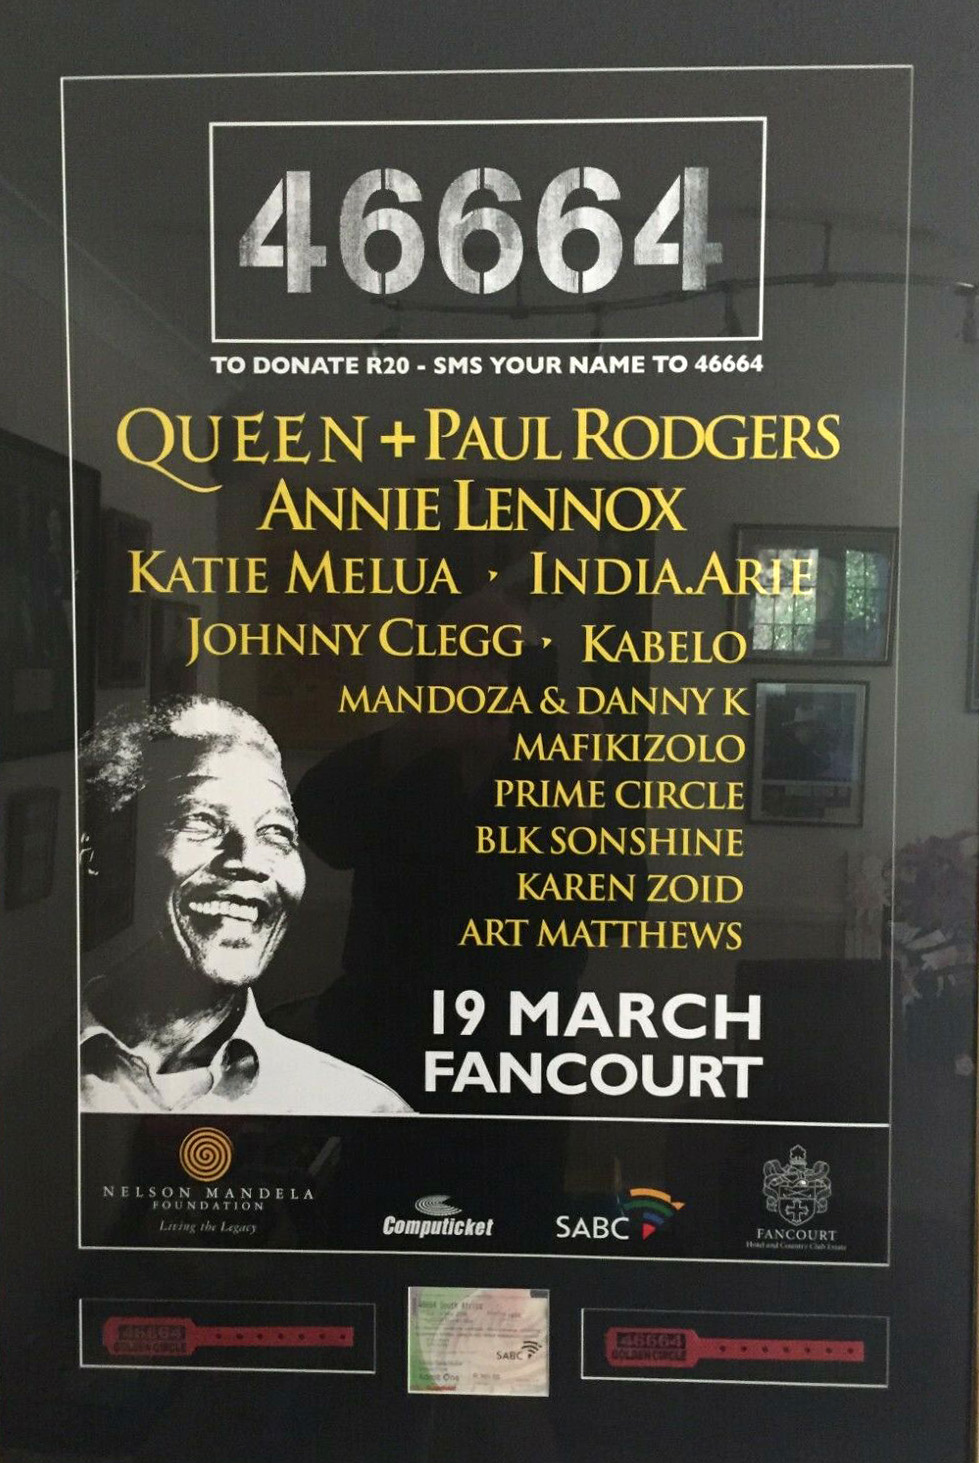 46664 poster - Fancourt, George, South Africa